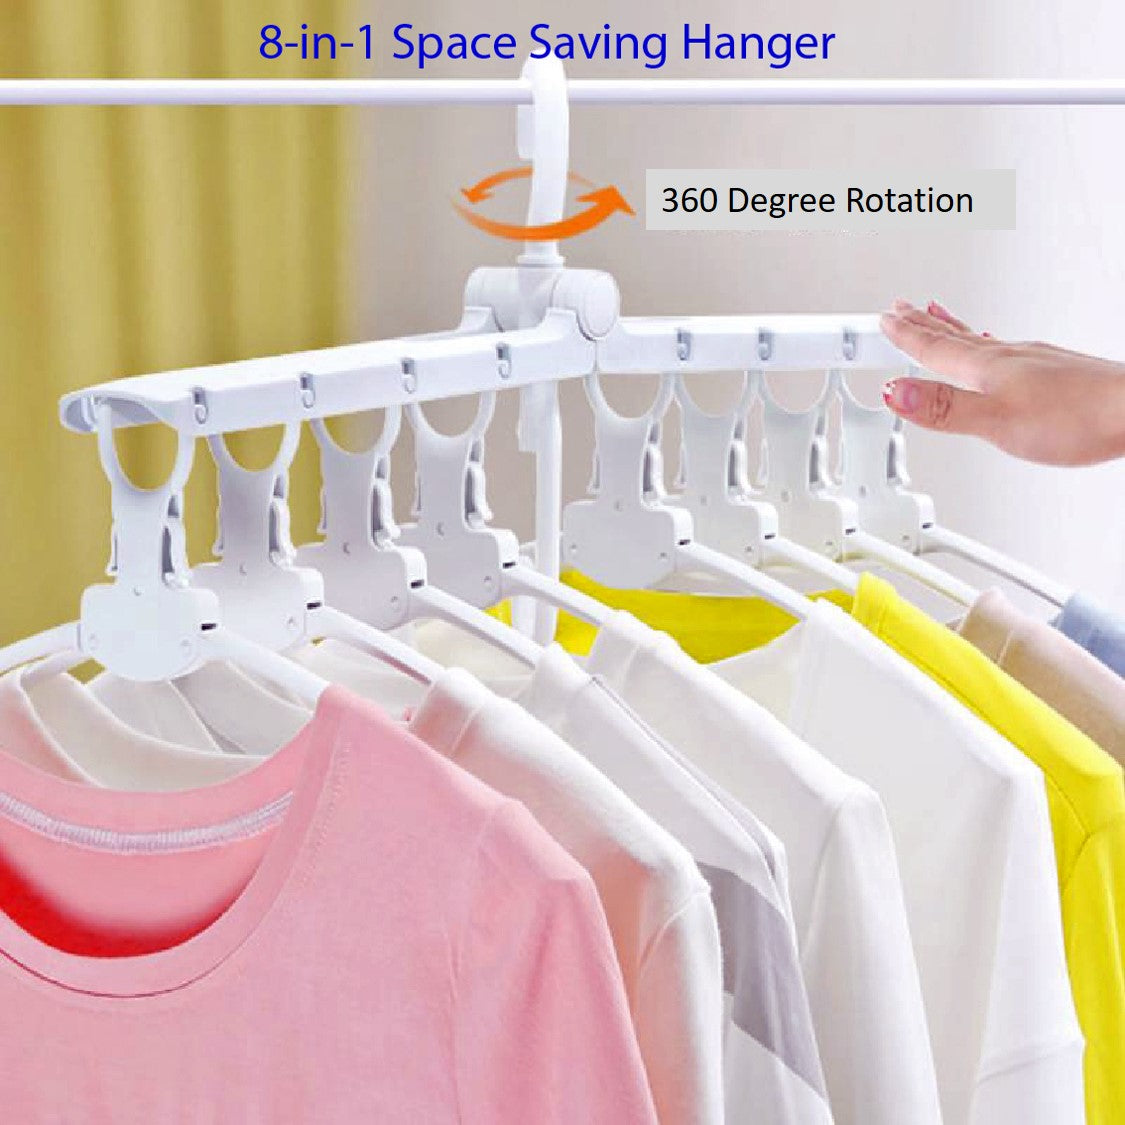 8-in-1 Space Saving Hangers